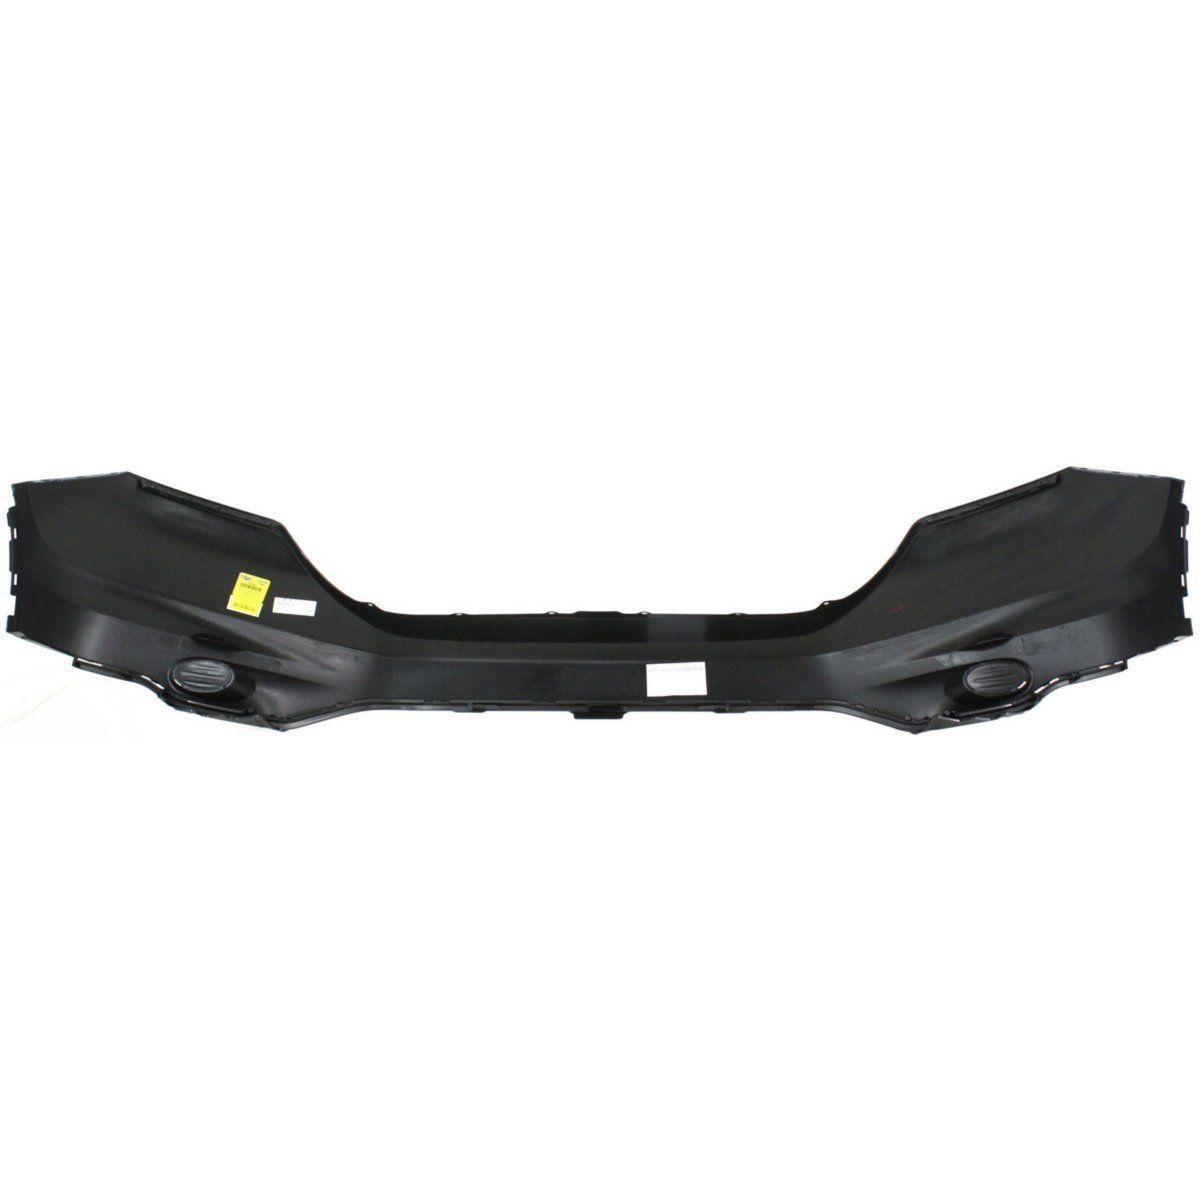 2010-2011 HONDA CR-V CR-V Front Bumper Cover Painted to Match